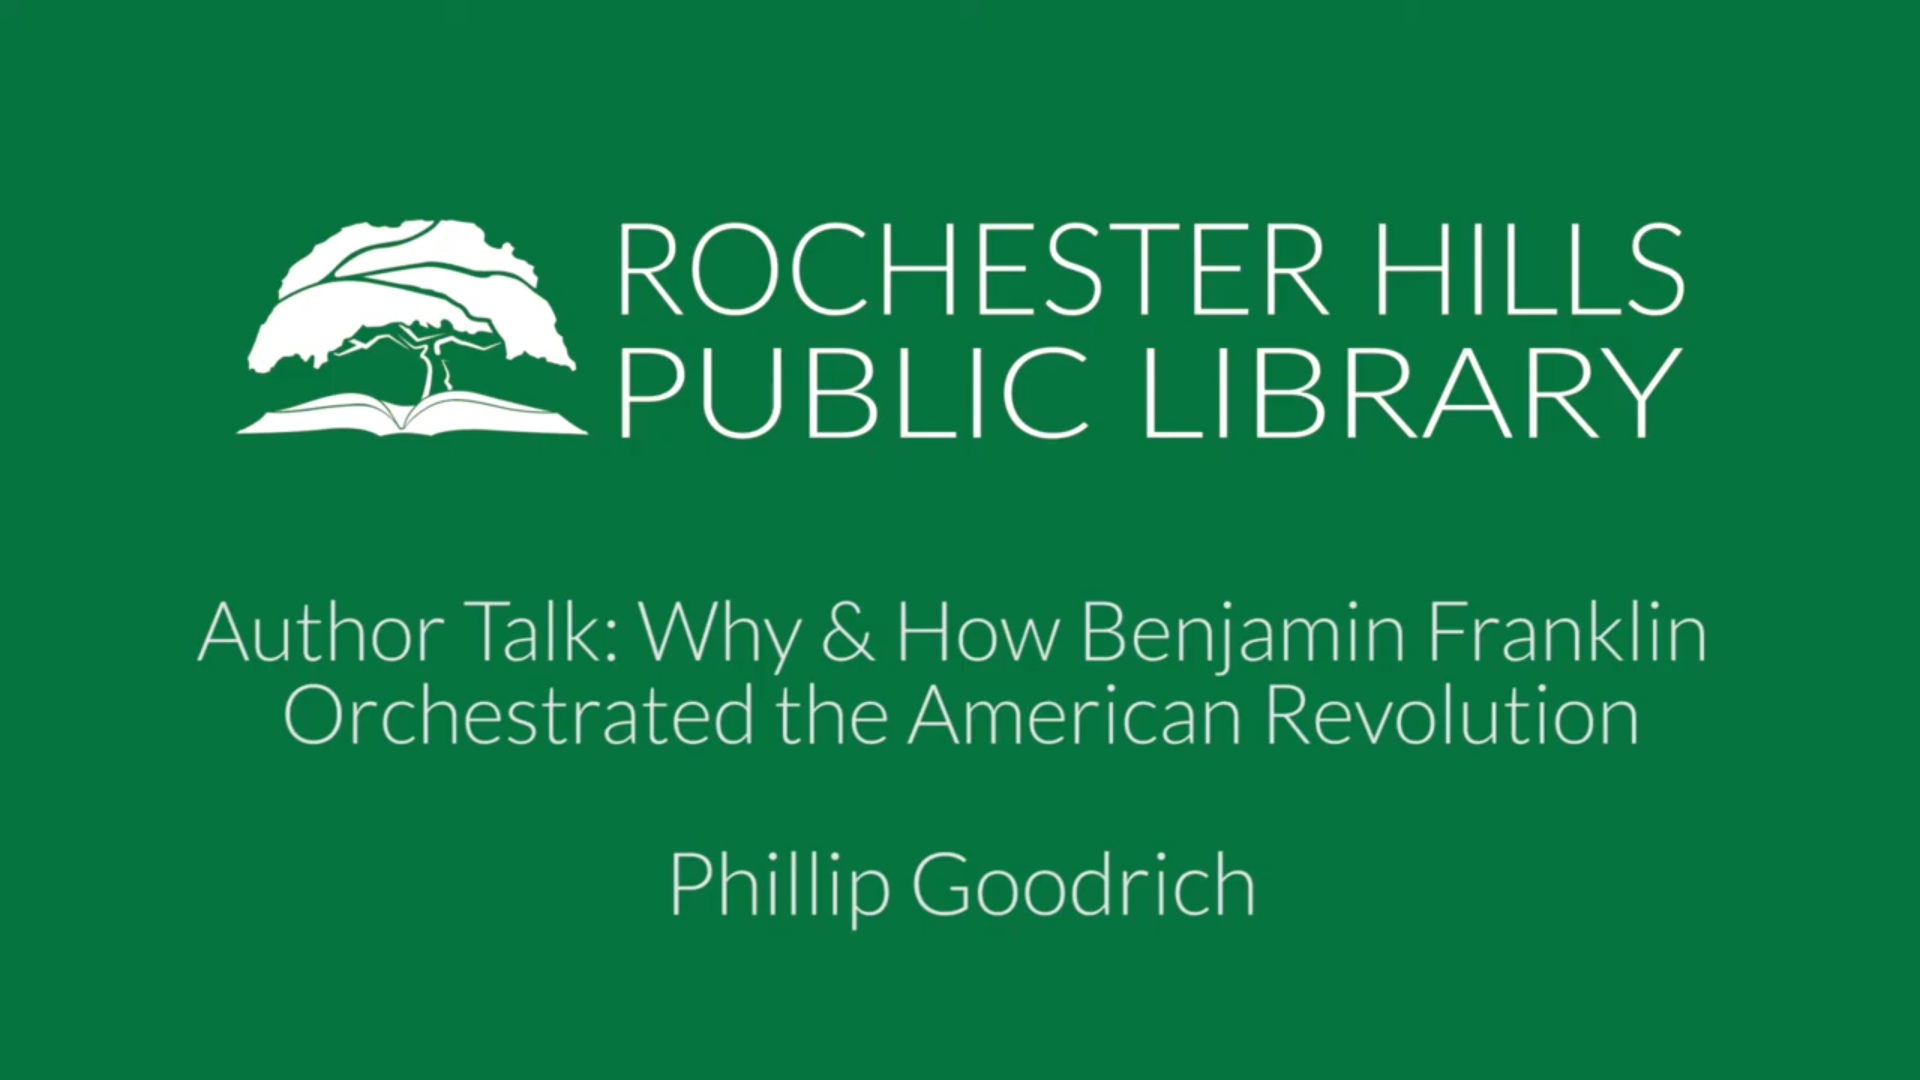 Author Talk: Why & How Benjamin Franklin Orchestrated the American Revolution with Phillip Goodrich